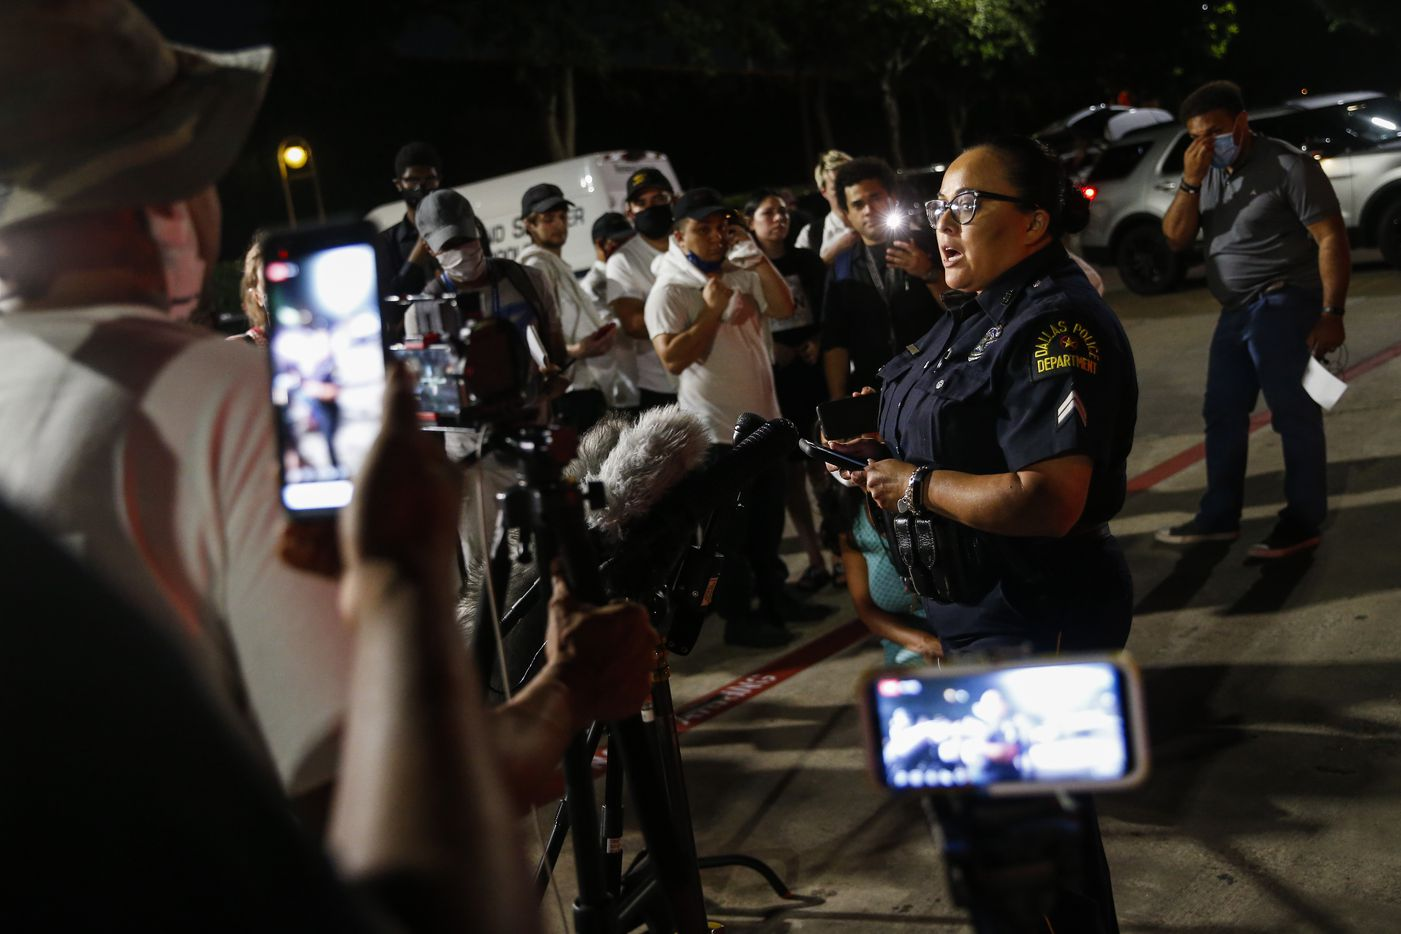 Dallas Police Senior Corporal Melinda Gutierrez addresses members of the media outside of Galleria Mall, where a shooting was reported Tuesday, June 16, 2020 in Dallas.